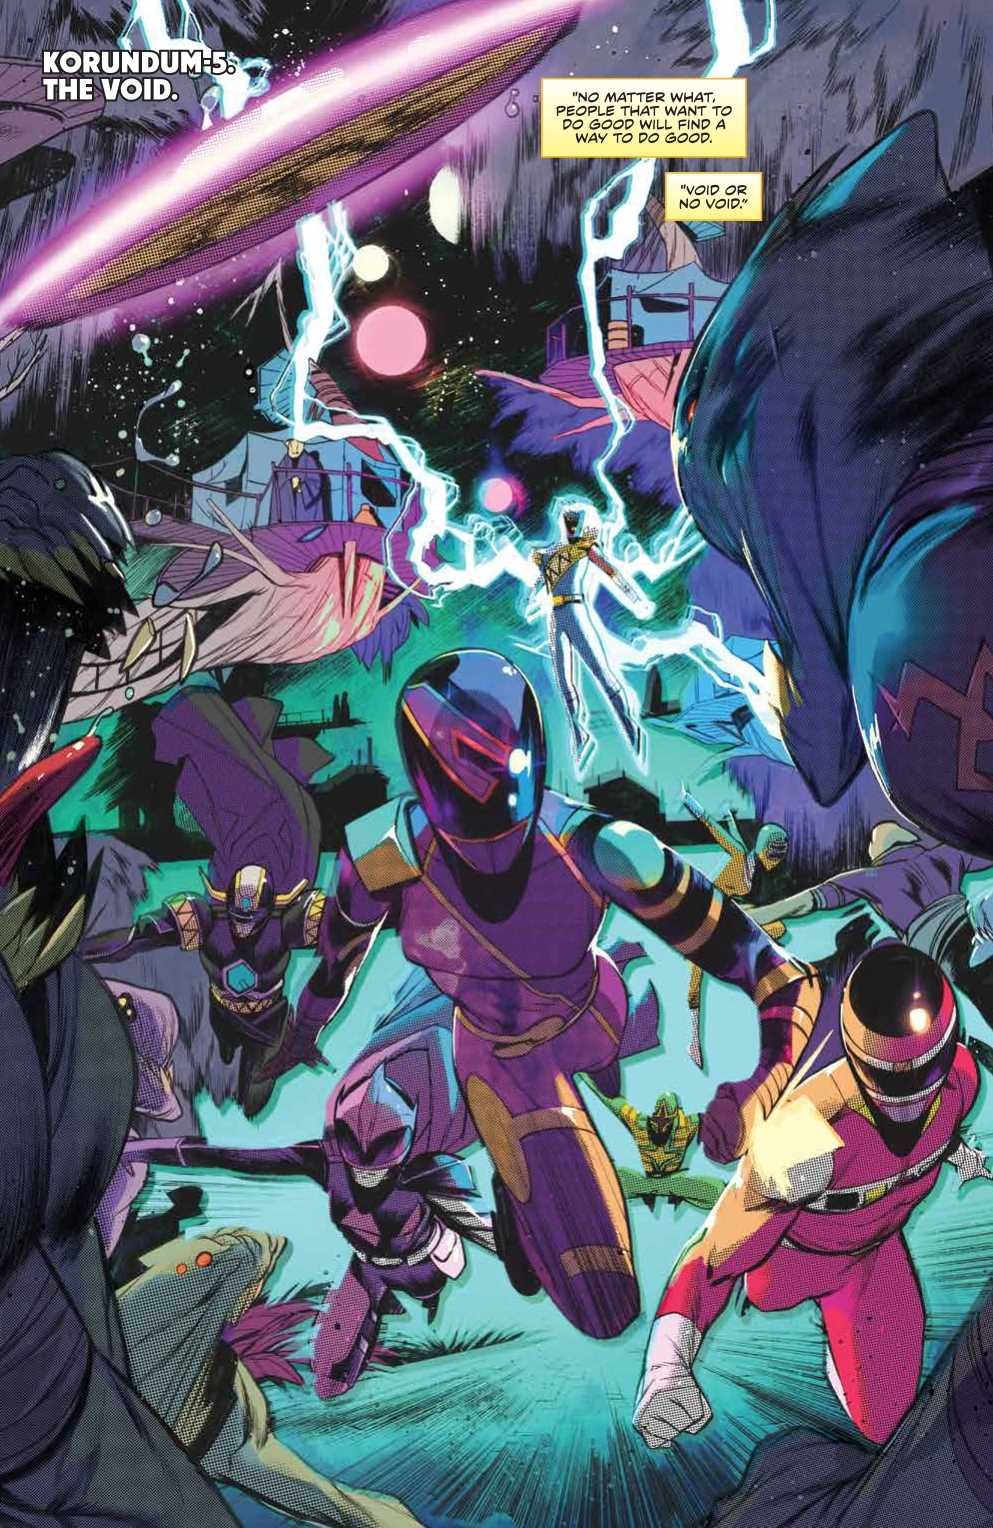 Mighty Morphin Power Rangers #36 page 3. Written by Marguerite Bennett and drawn by Simone Di Meo. Published by BOOM! Studios. February 27, 2019.